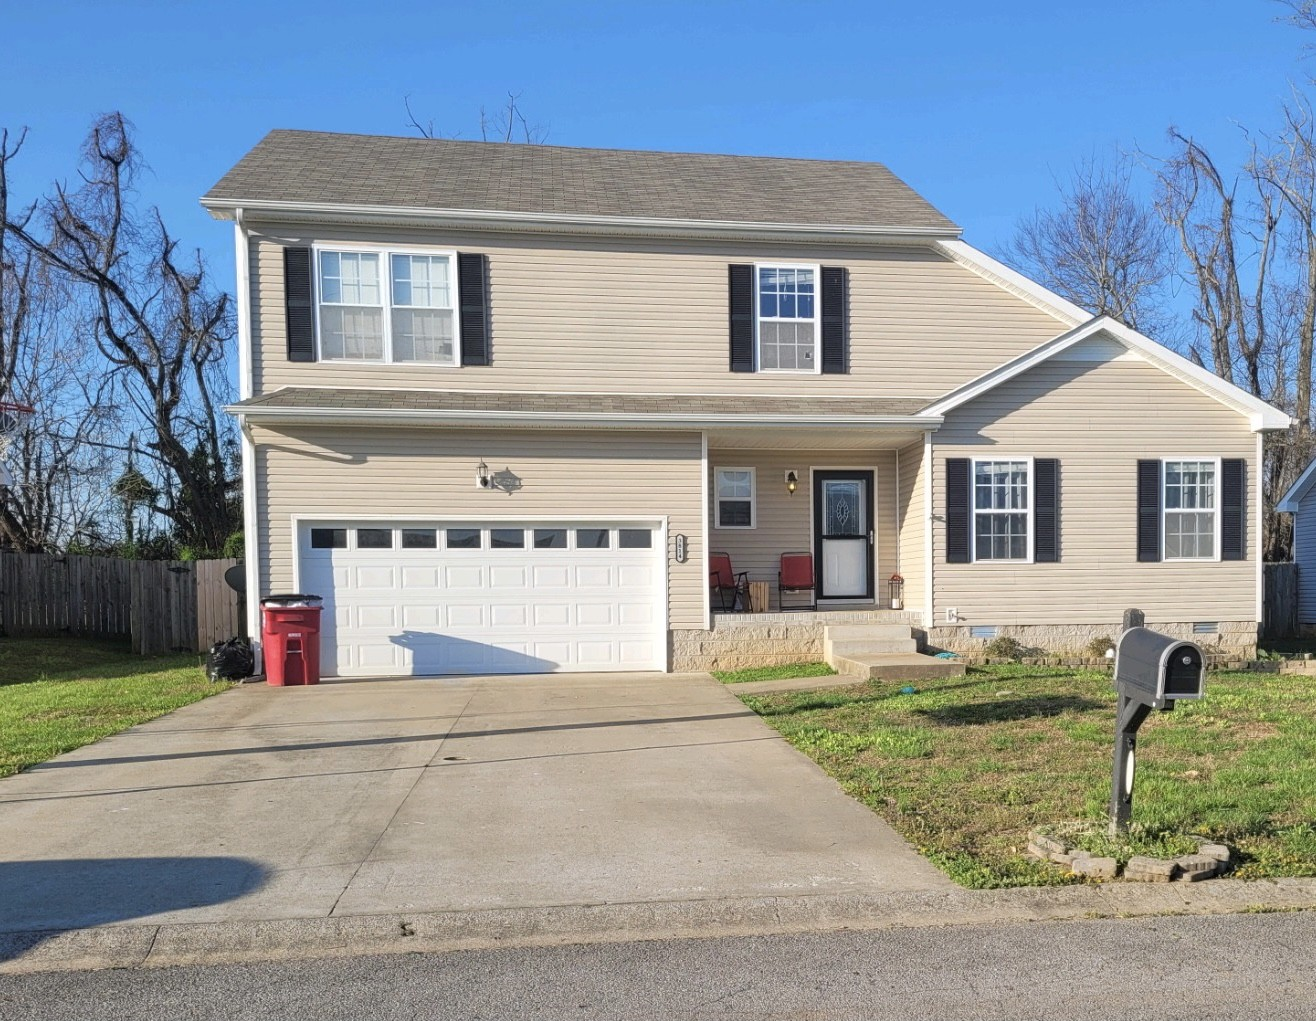 Large well maintained four bedroom home in Hazelwood subdivision.  Vaulted ceilings in spacious living room right off formal dining room. All bedrooms on second level. Master has full bath and walk in closet. Backyard is fenced with a deck right outside the back door!